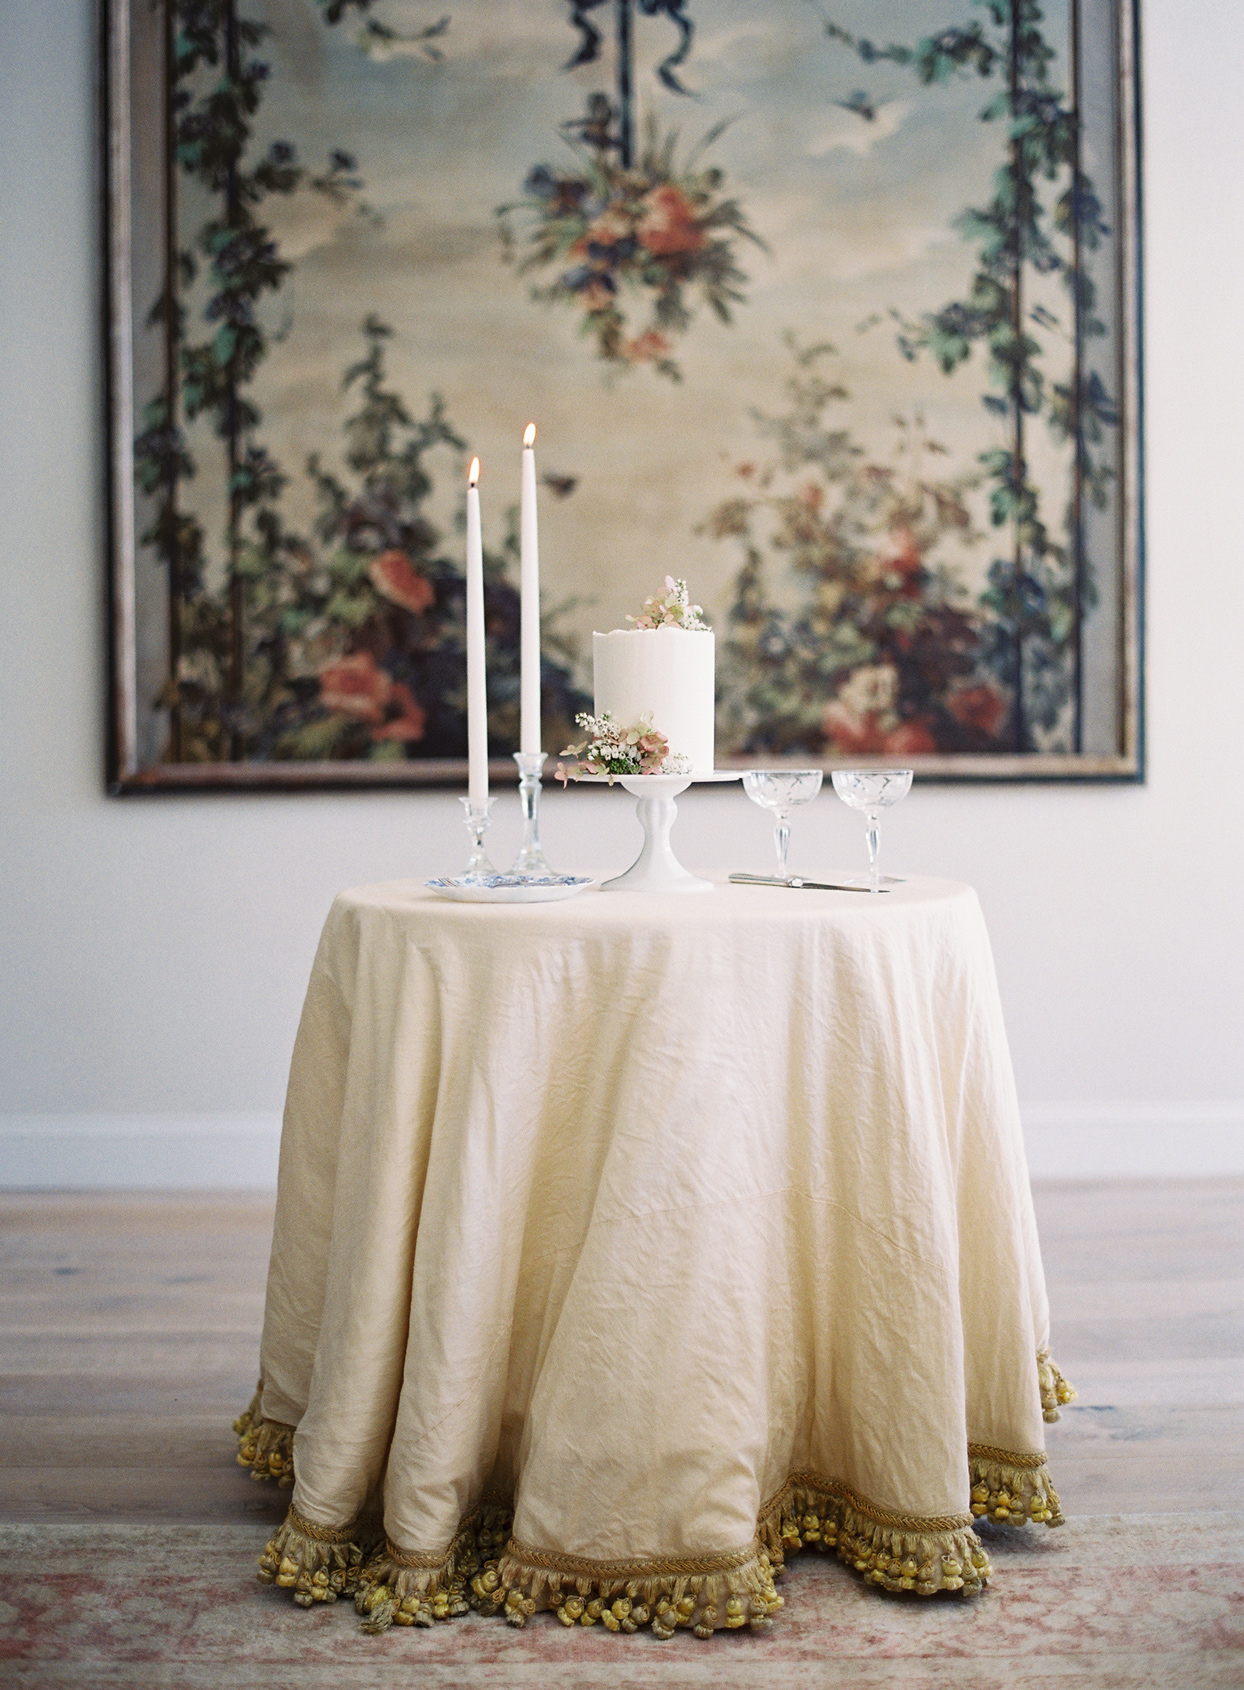 Cake table with candle, glassware, and two-tier cake